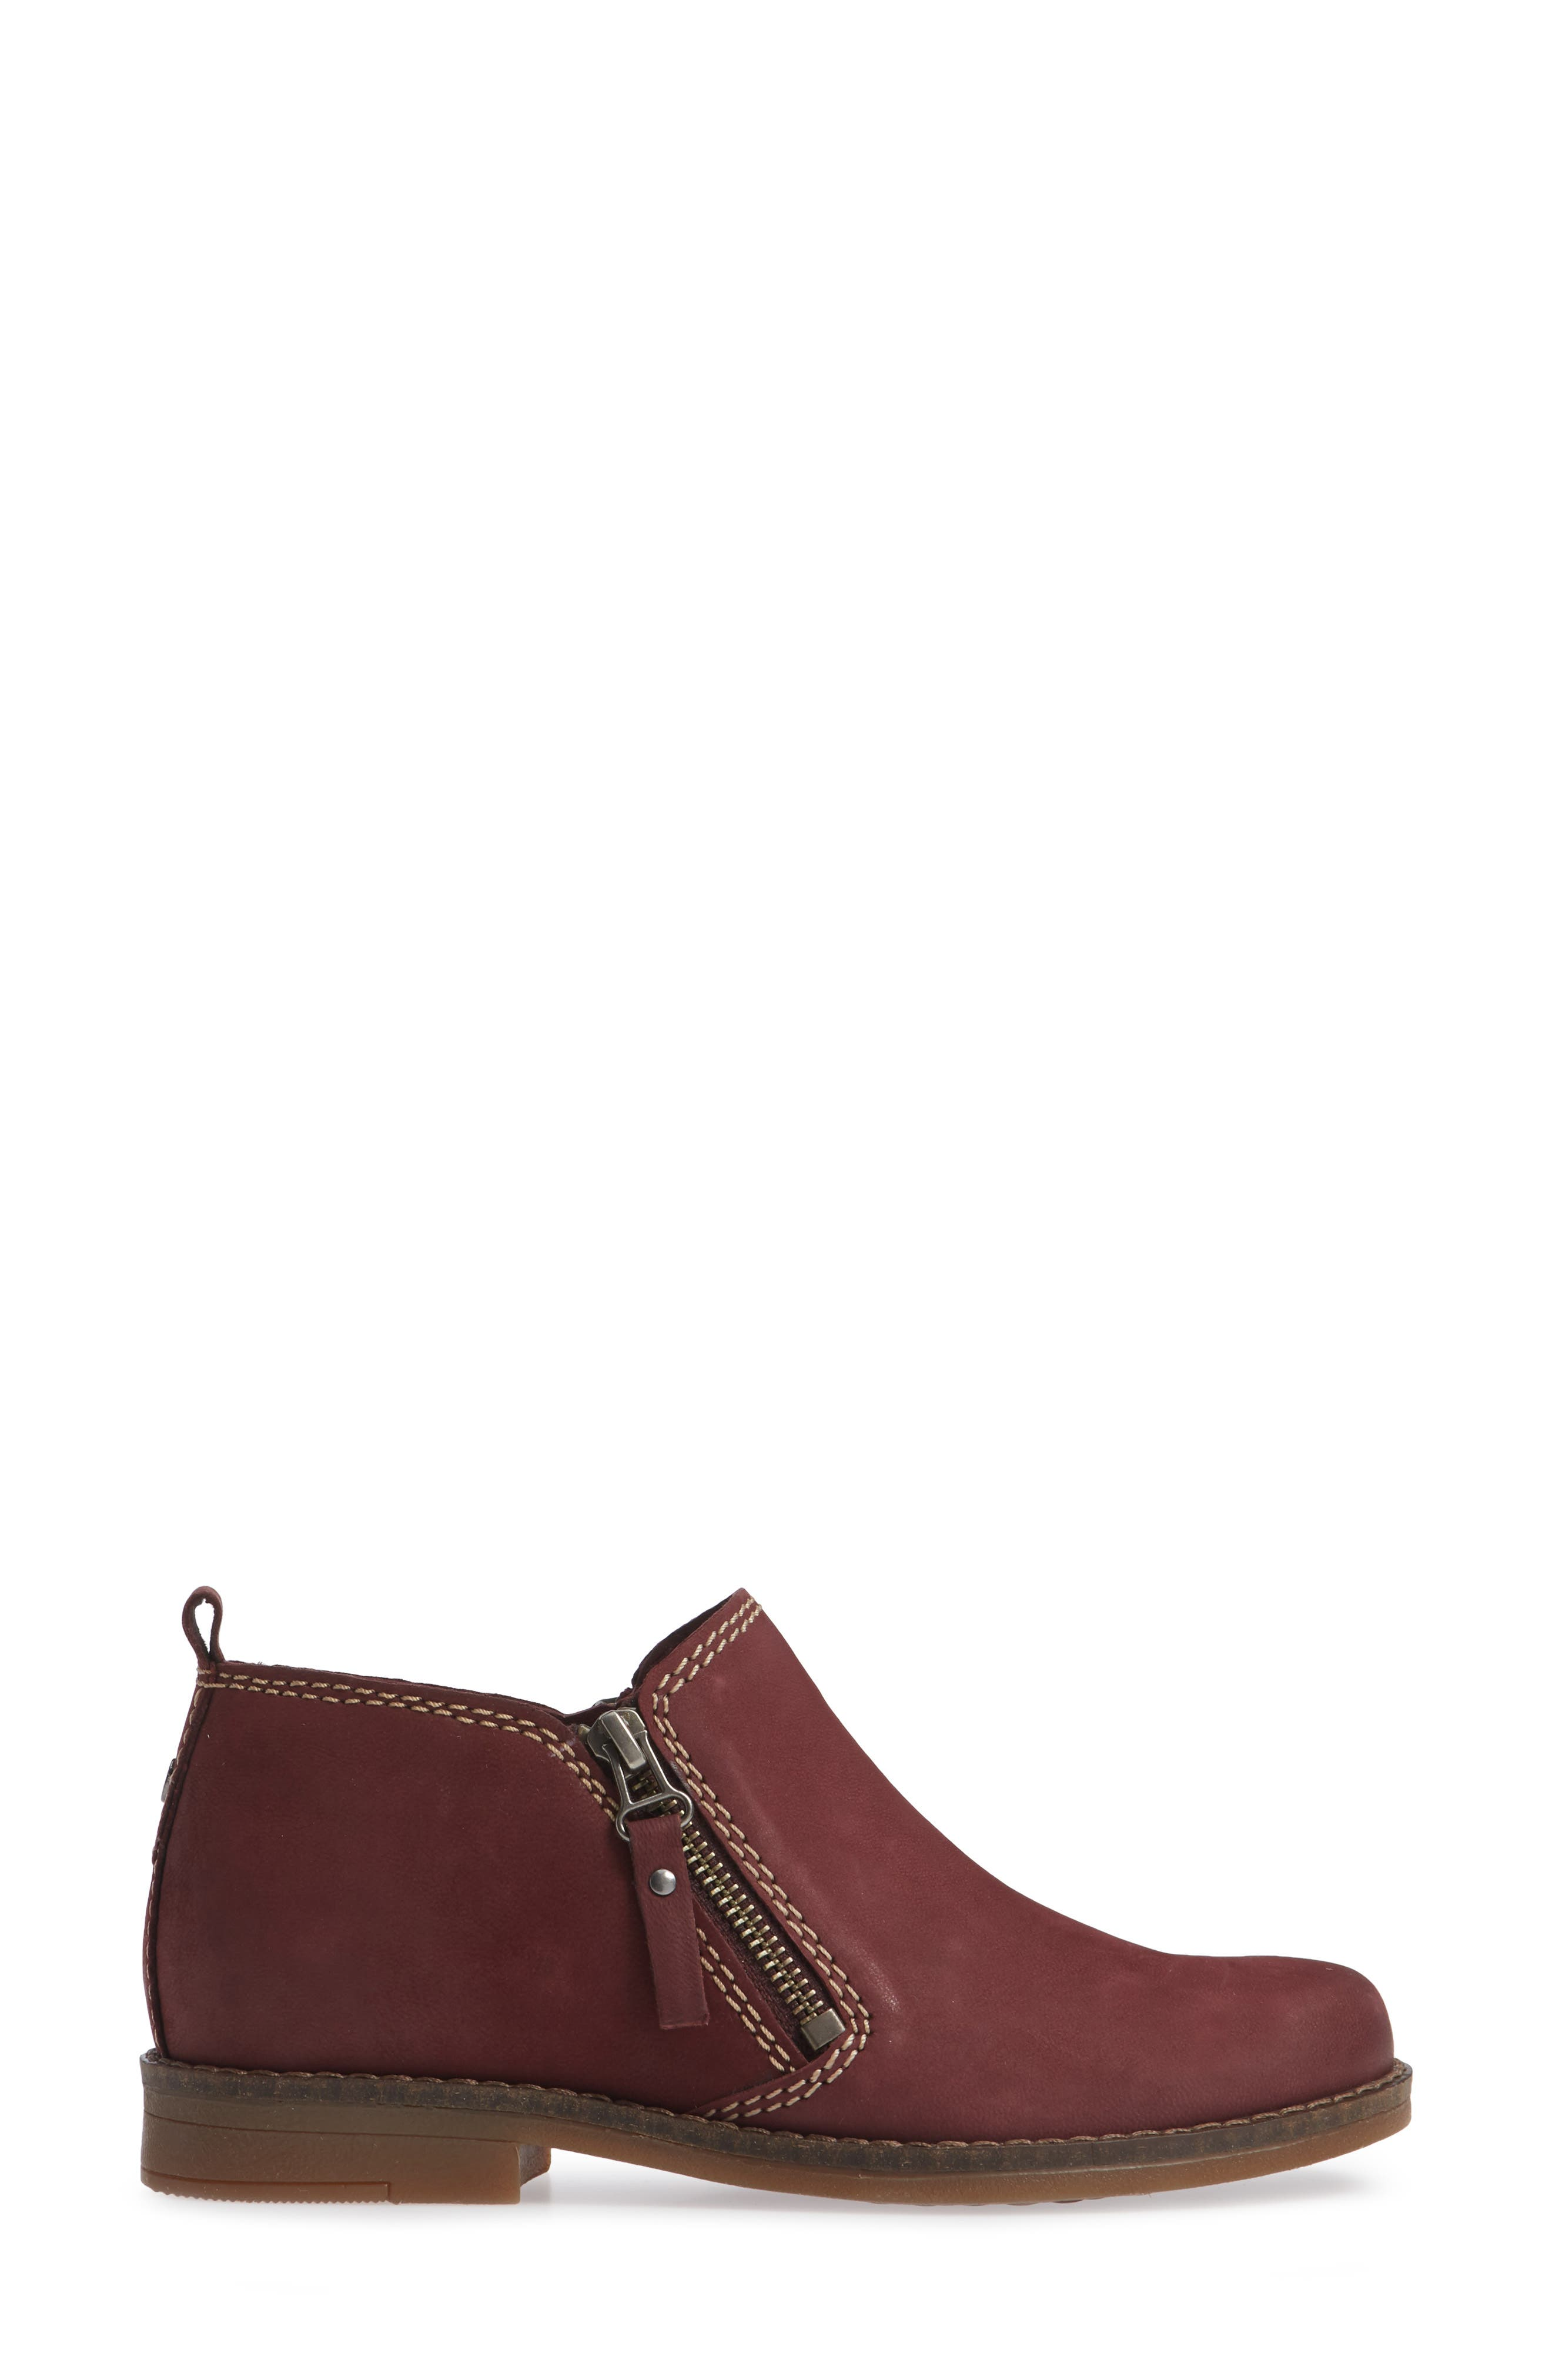 'Mazin Cayto' Bootie,                             Alternate thumbnail 3, color,                             Dark Wine Nubuck